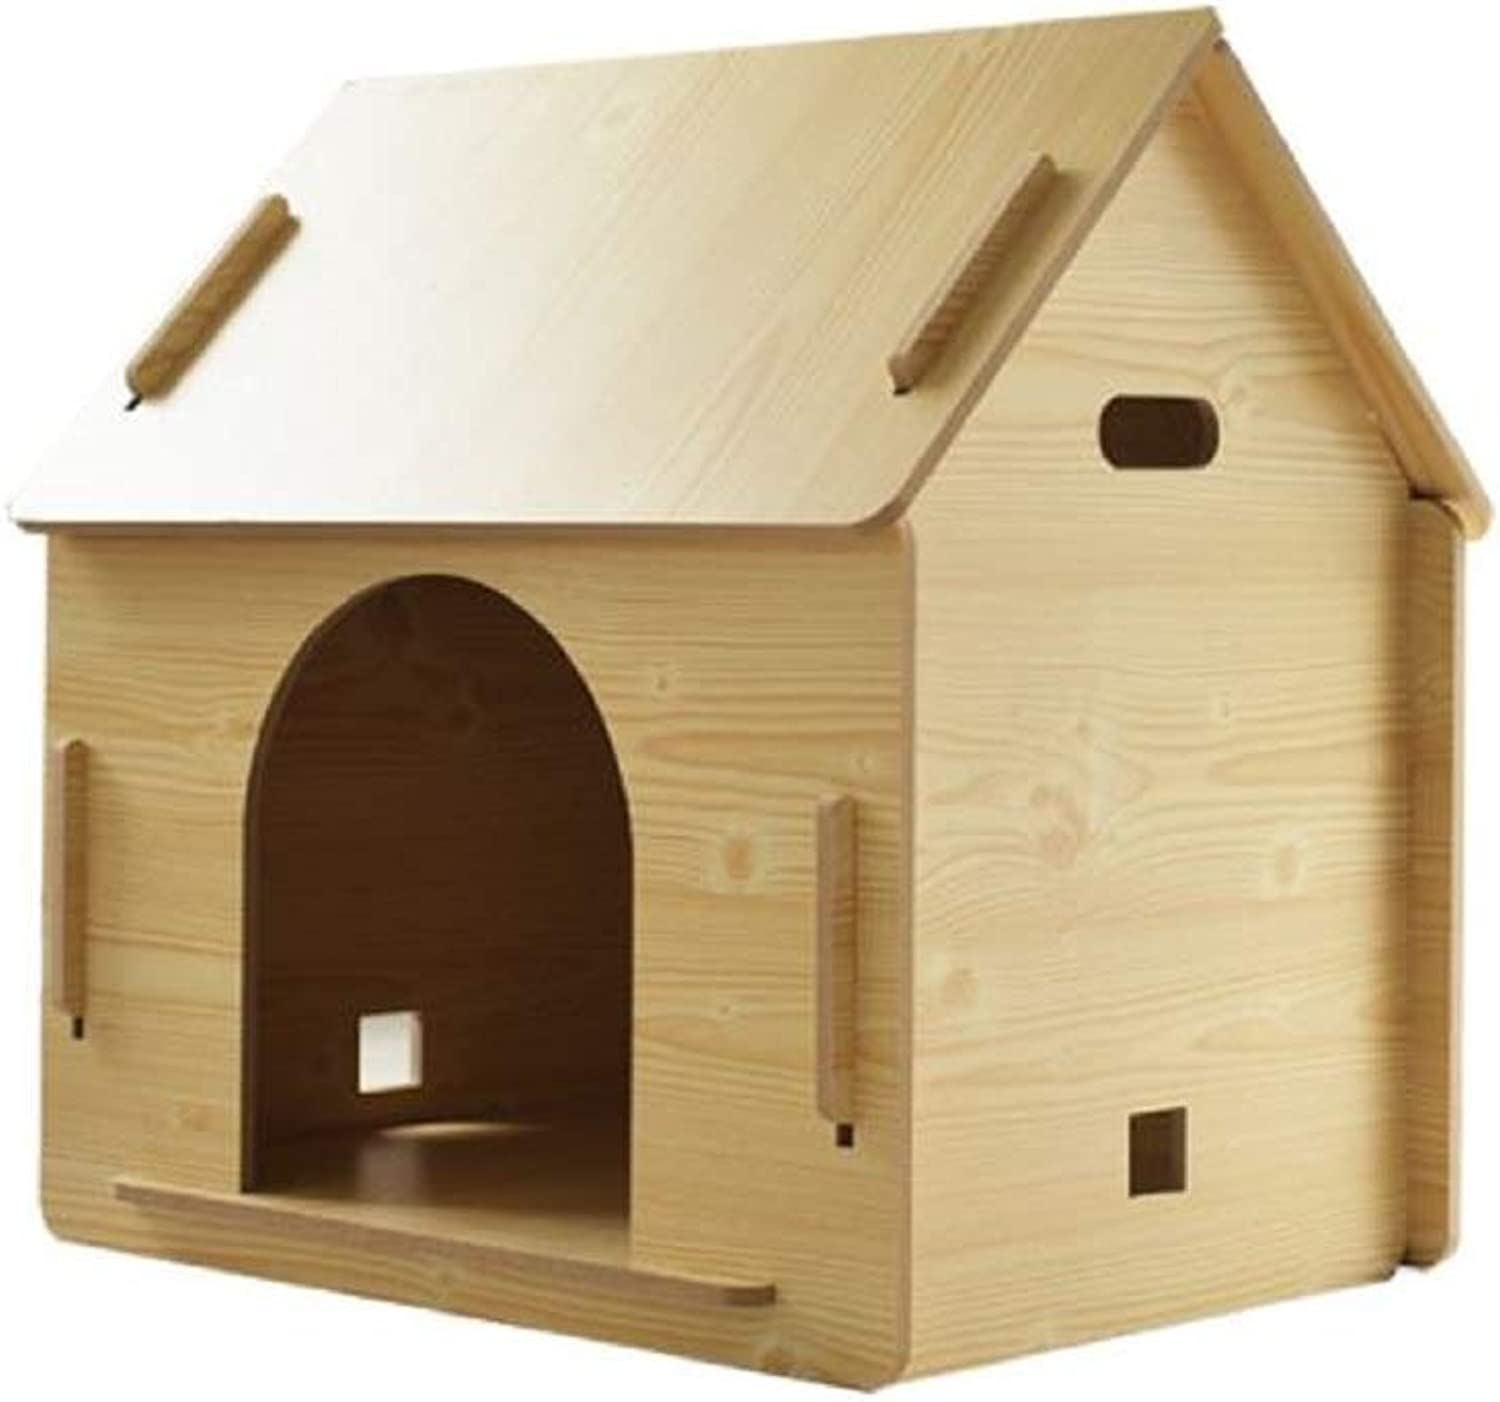 GDDYQ Dog House, Wooden Pet House Good Ventilation Easy to Install Easy to Clean, Suitable for All Seasons,1,M